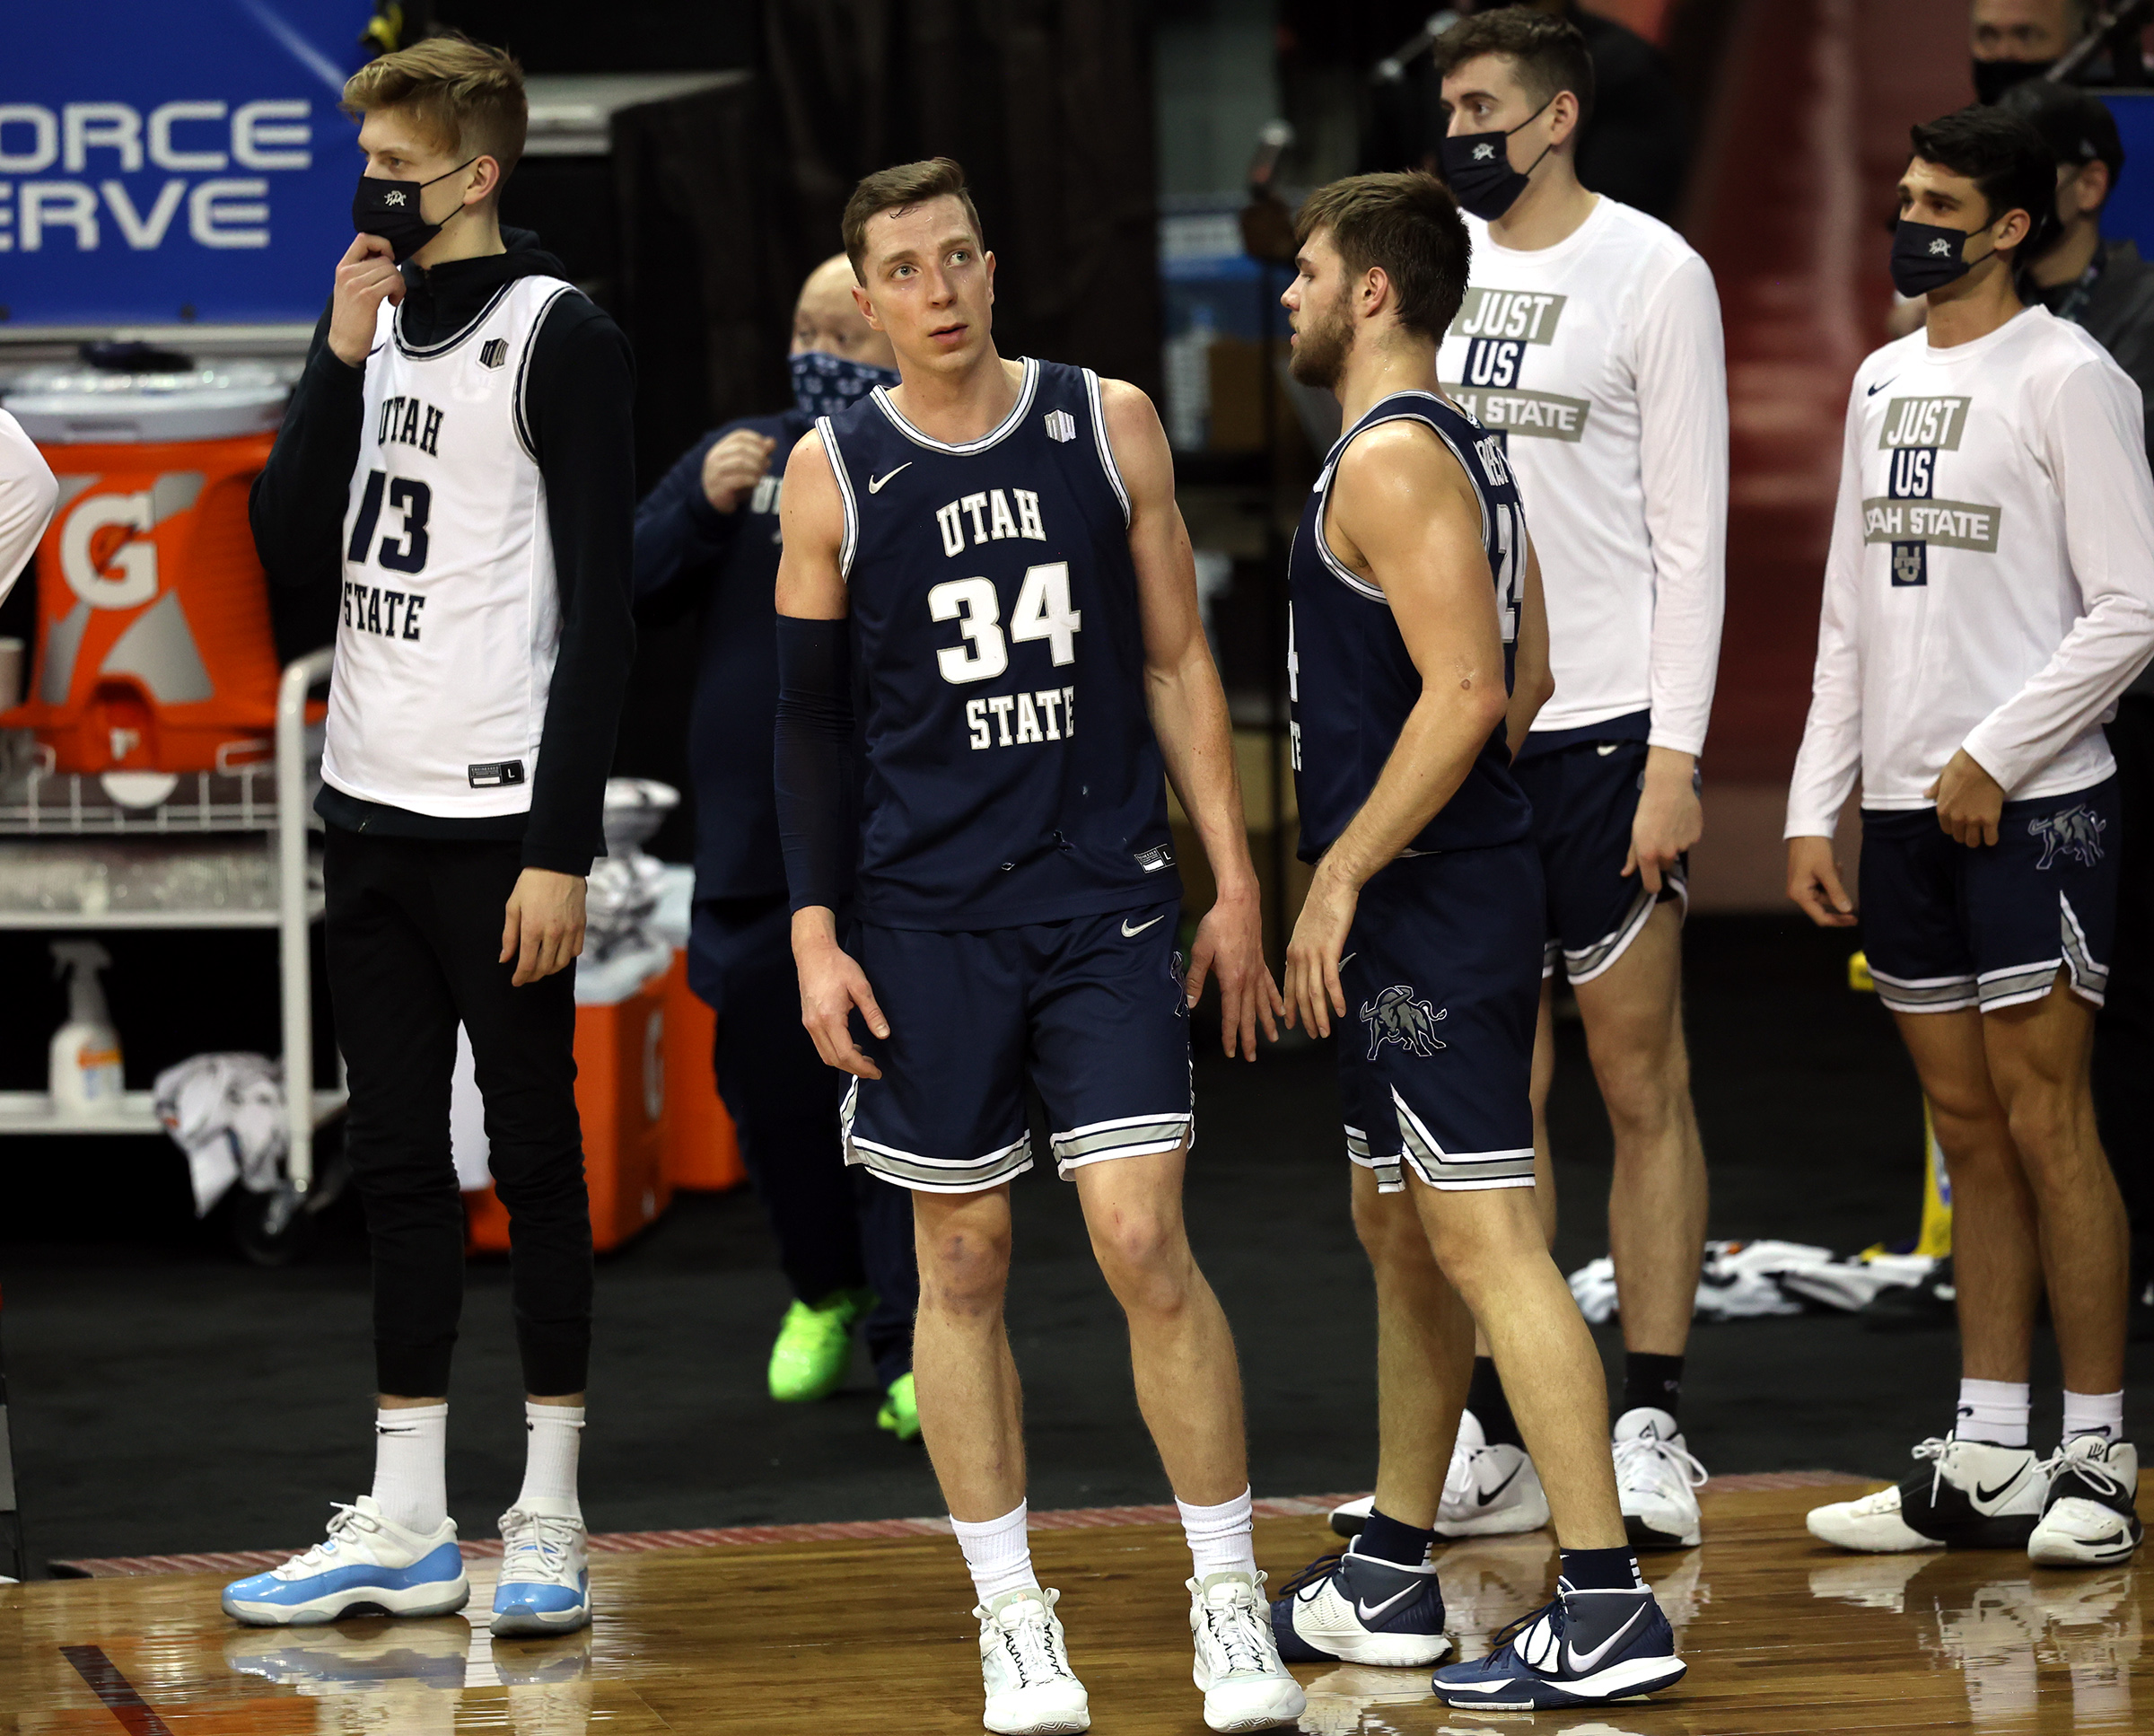 Utah State players watch as the final seconds tick away as they fall 68-57 to San Diego State in the championship game of the Mountain West Tournament at the Thomas & Mack Center in Las Vegas on Saturday, March 13, 2021.